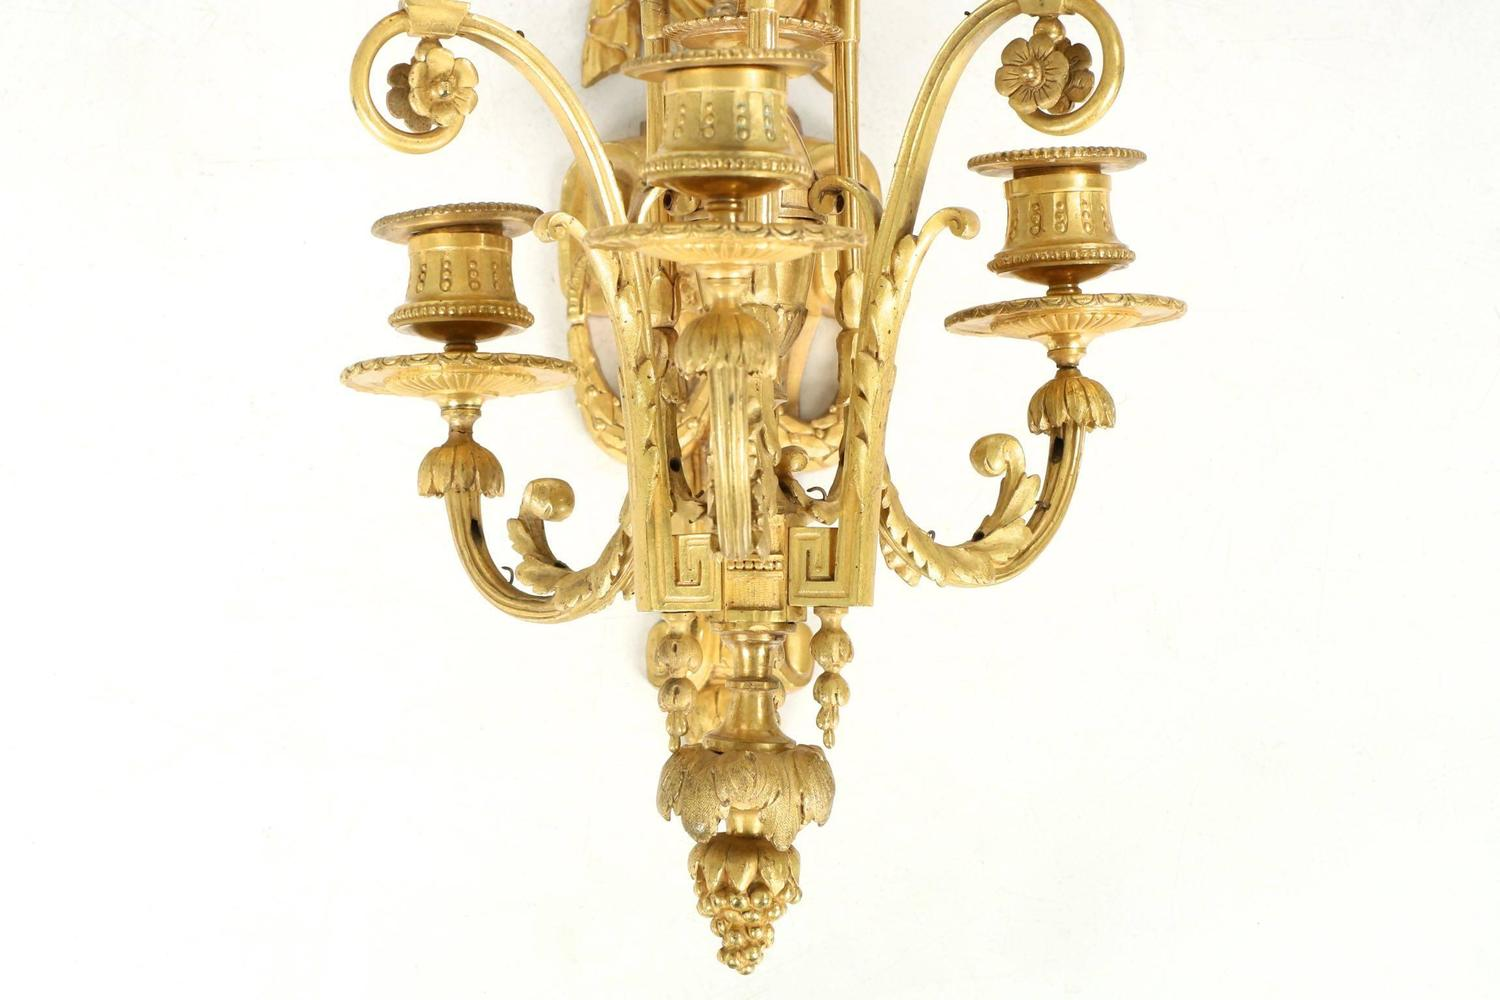 Wall Sconces Antique Style : Pair of Louis XVI Style Bronze Antique Candelabra Wall Sconces, 19th Century For Sale at 1stdibs